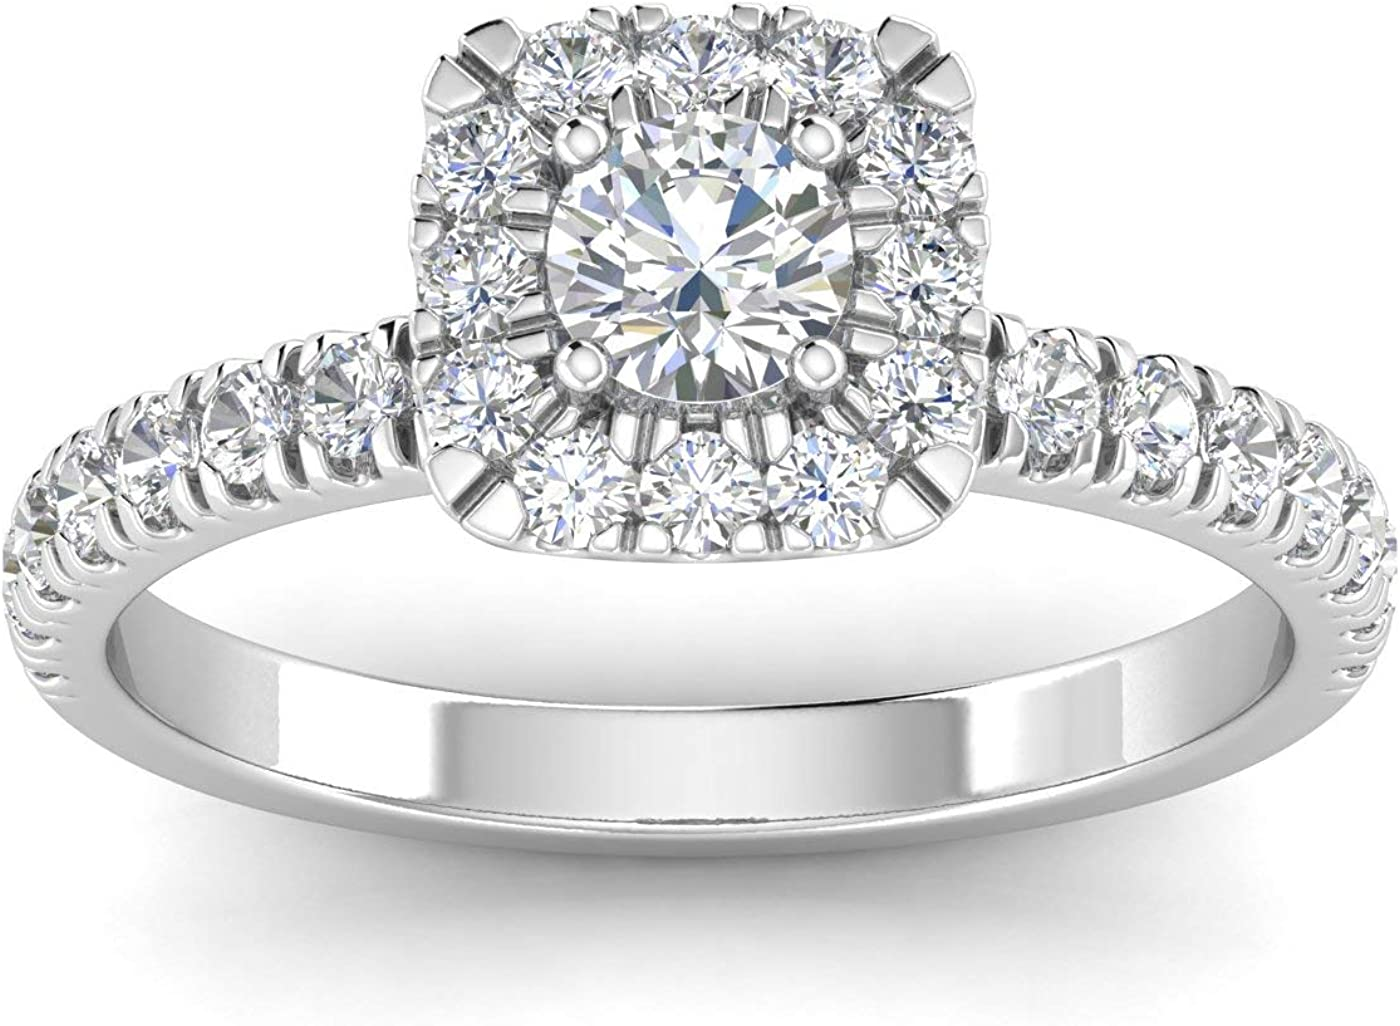 IGI Certified 1 Carat TW Natural Diamond Engagement Ring in 10k White Gold (H-I Color, I2-I3 Clarity)